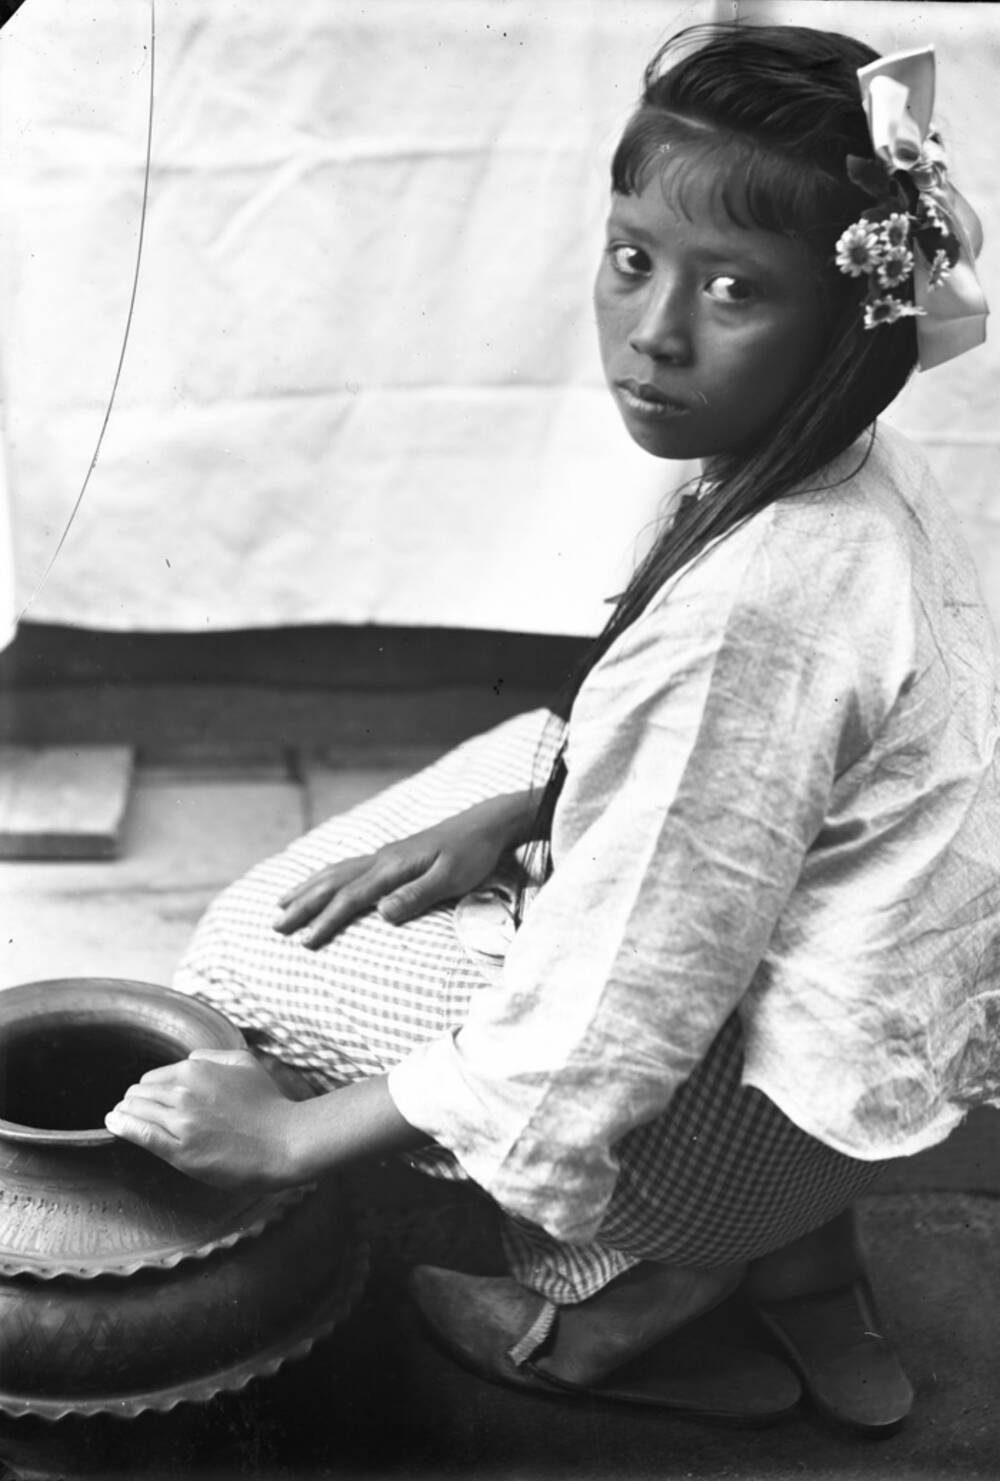 A black and white photo of a Sri Lankan girl kneeling in an interior. She rests her left hand on a ceramic jug beside her.